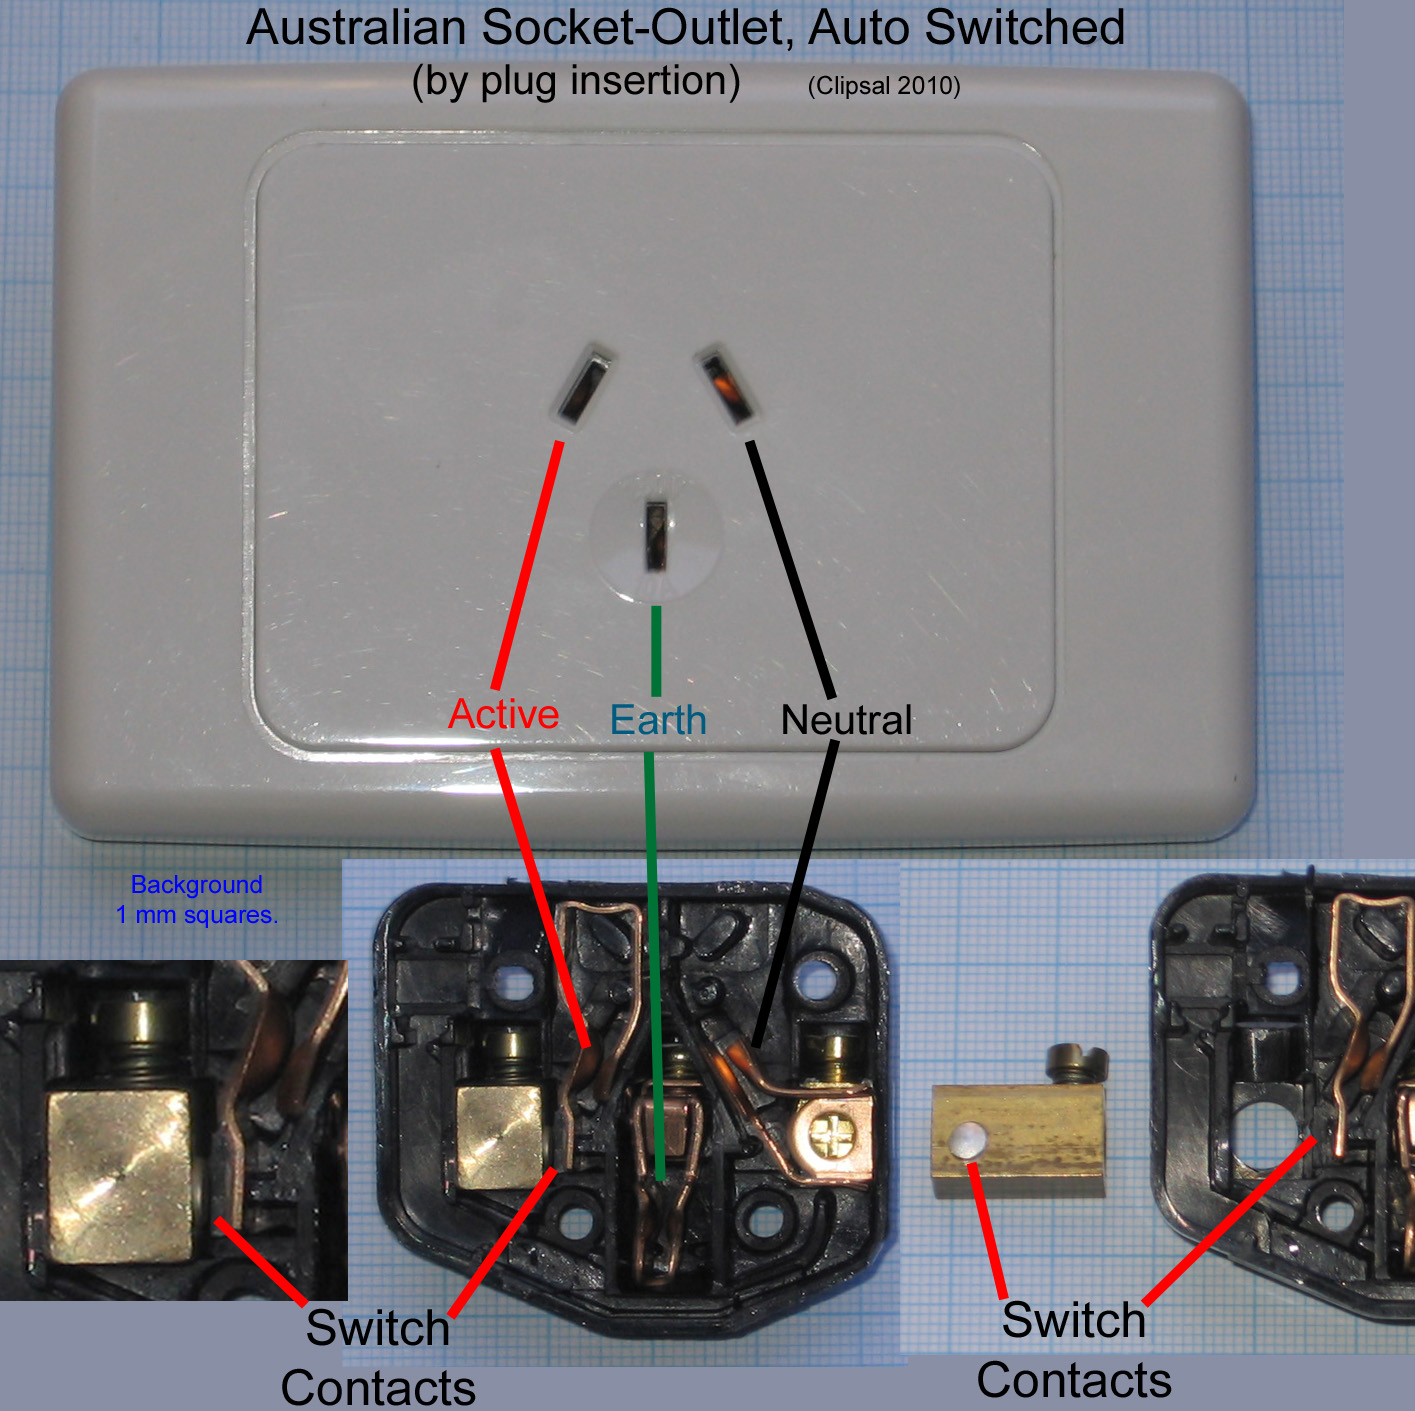 file australian socket outlet auto switched jpg wikimedia commons rh commons wikimedia org electrical plug wiring colors australia australian electrical plug wiring